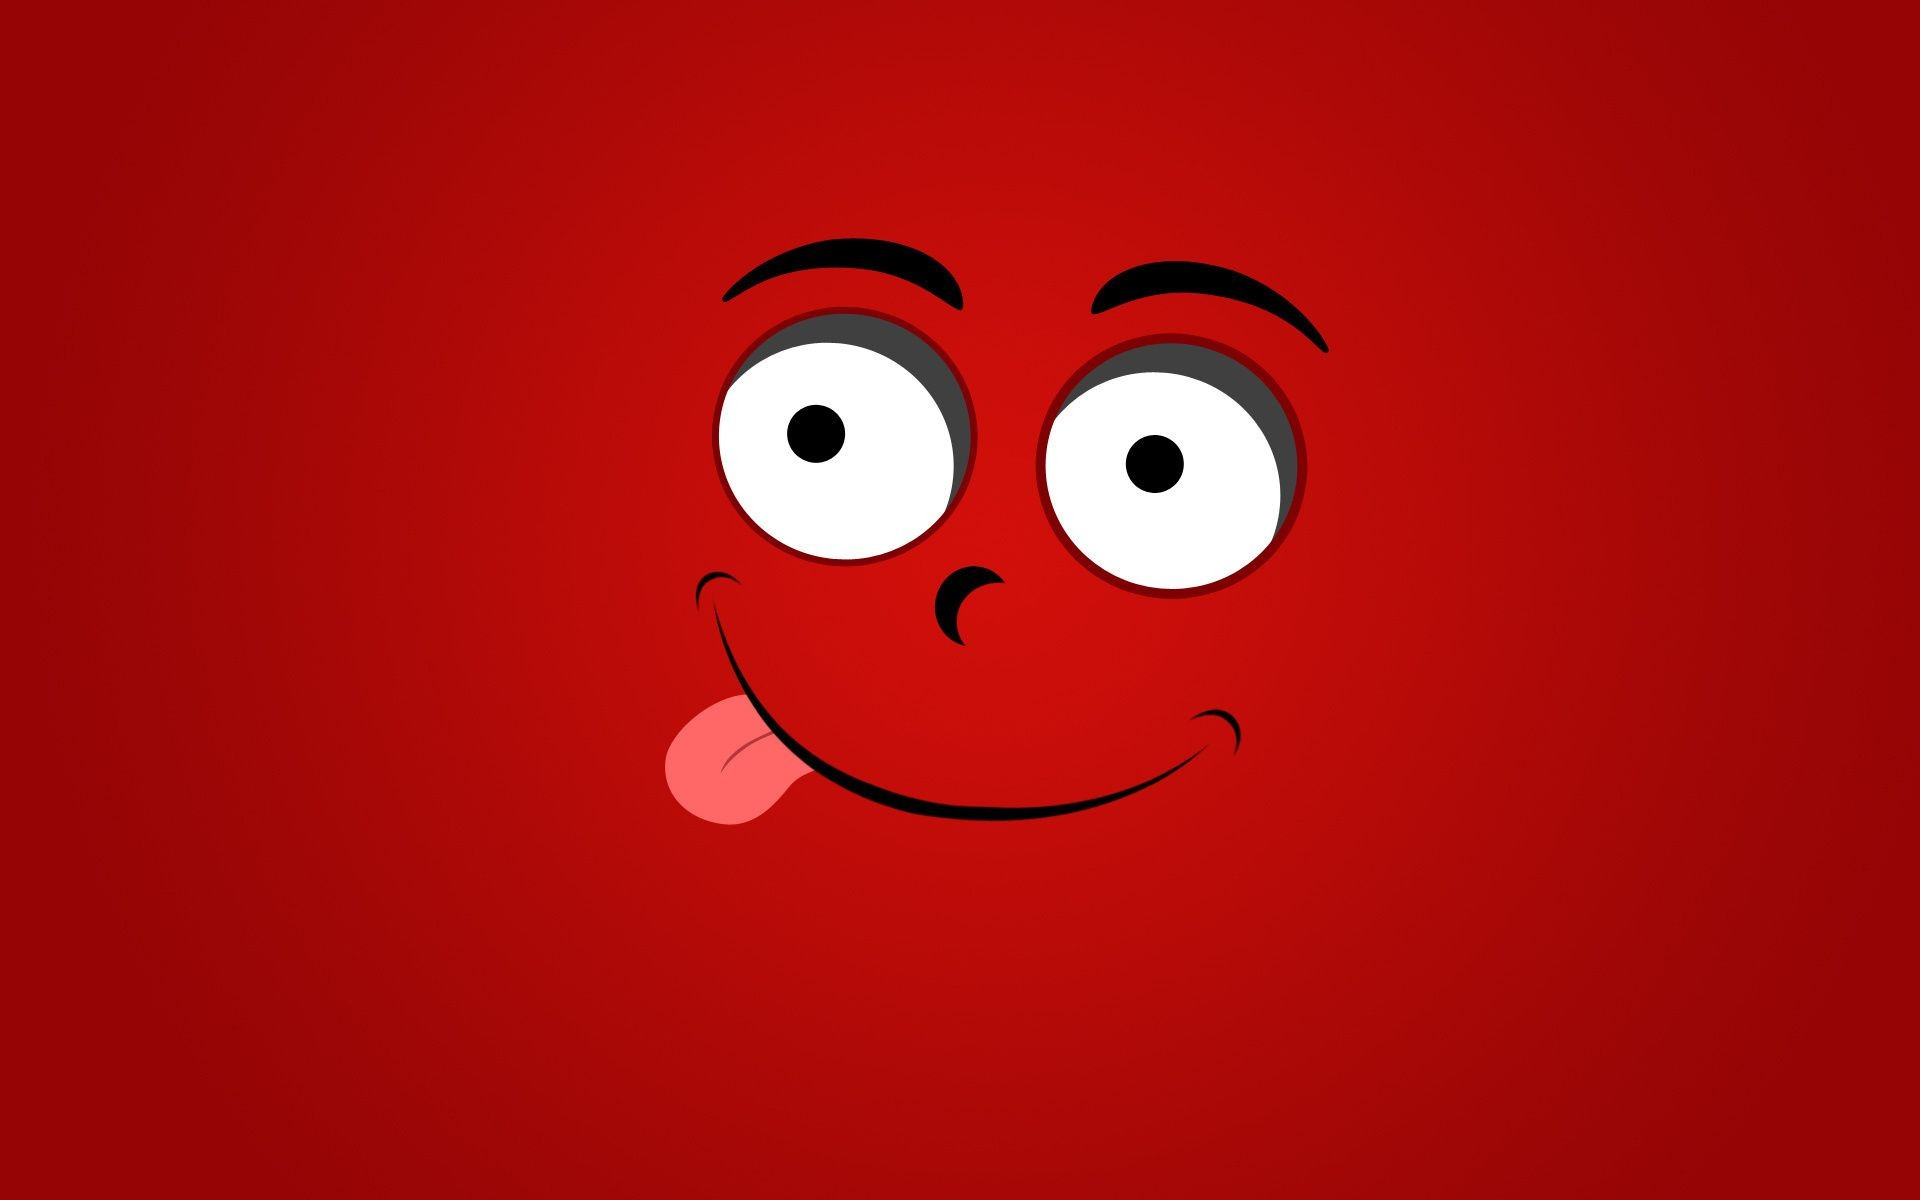 the language of smiley face background red Smile